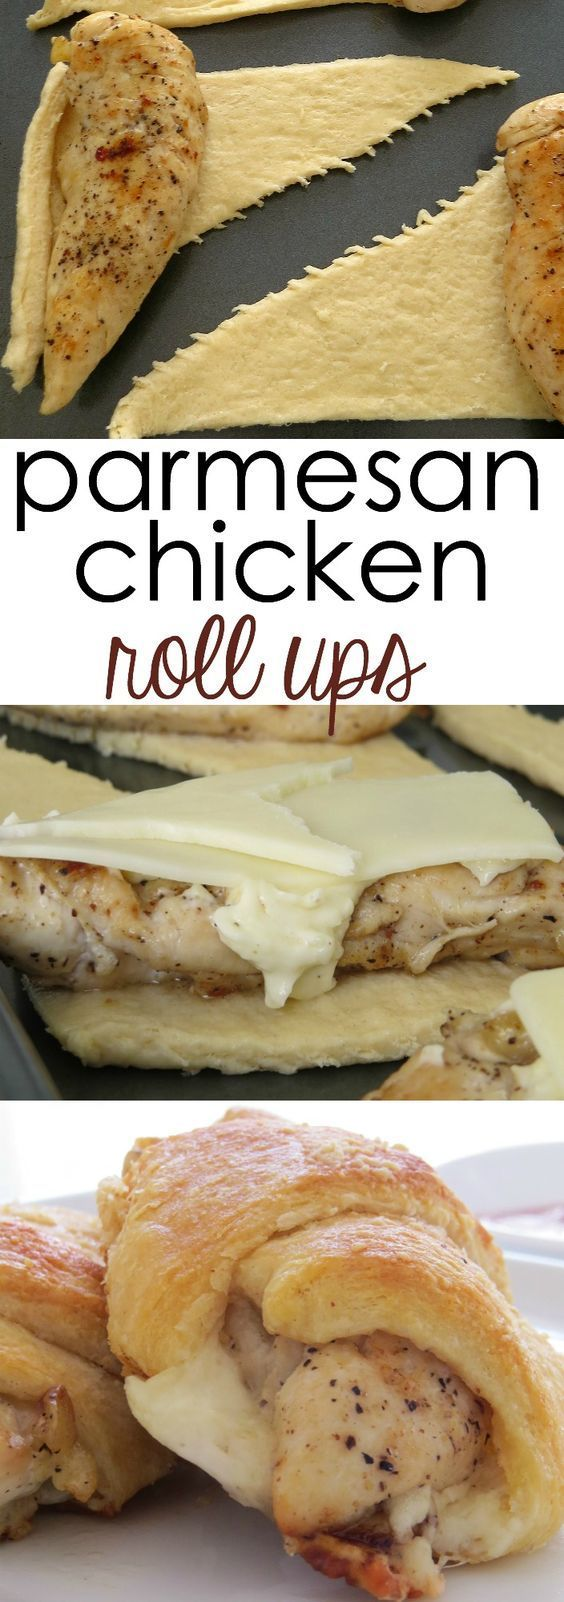 Parmesan Chicken Roll Ups #favourites